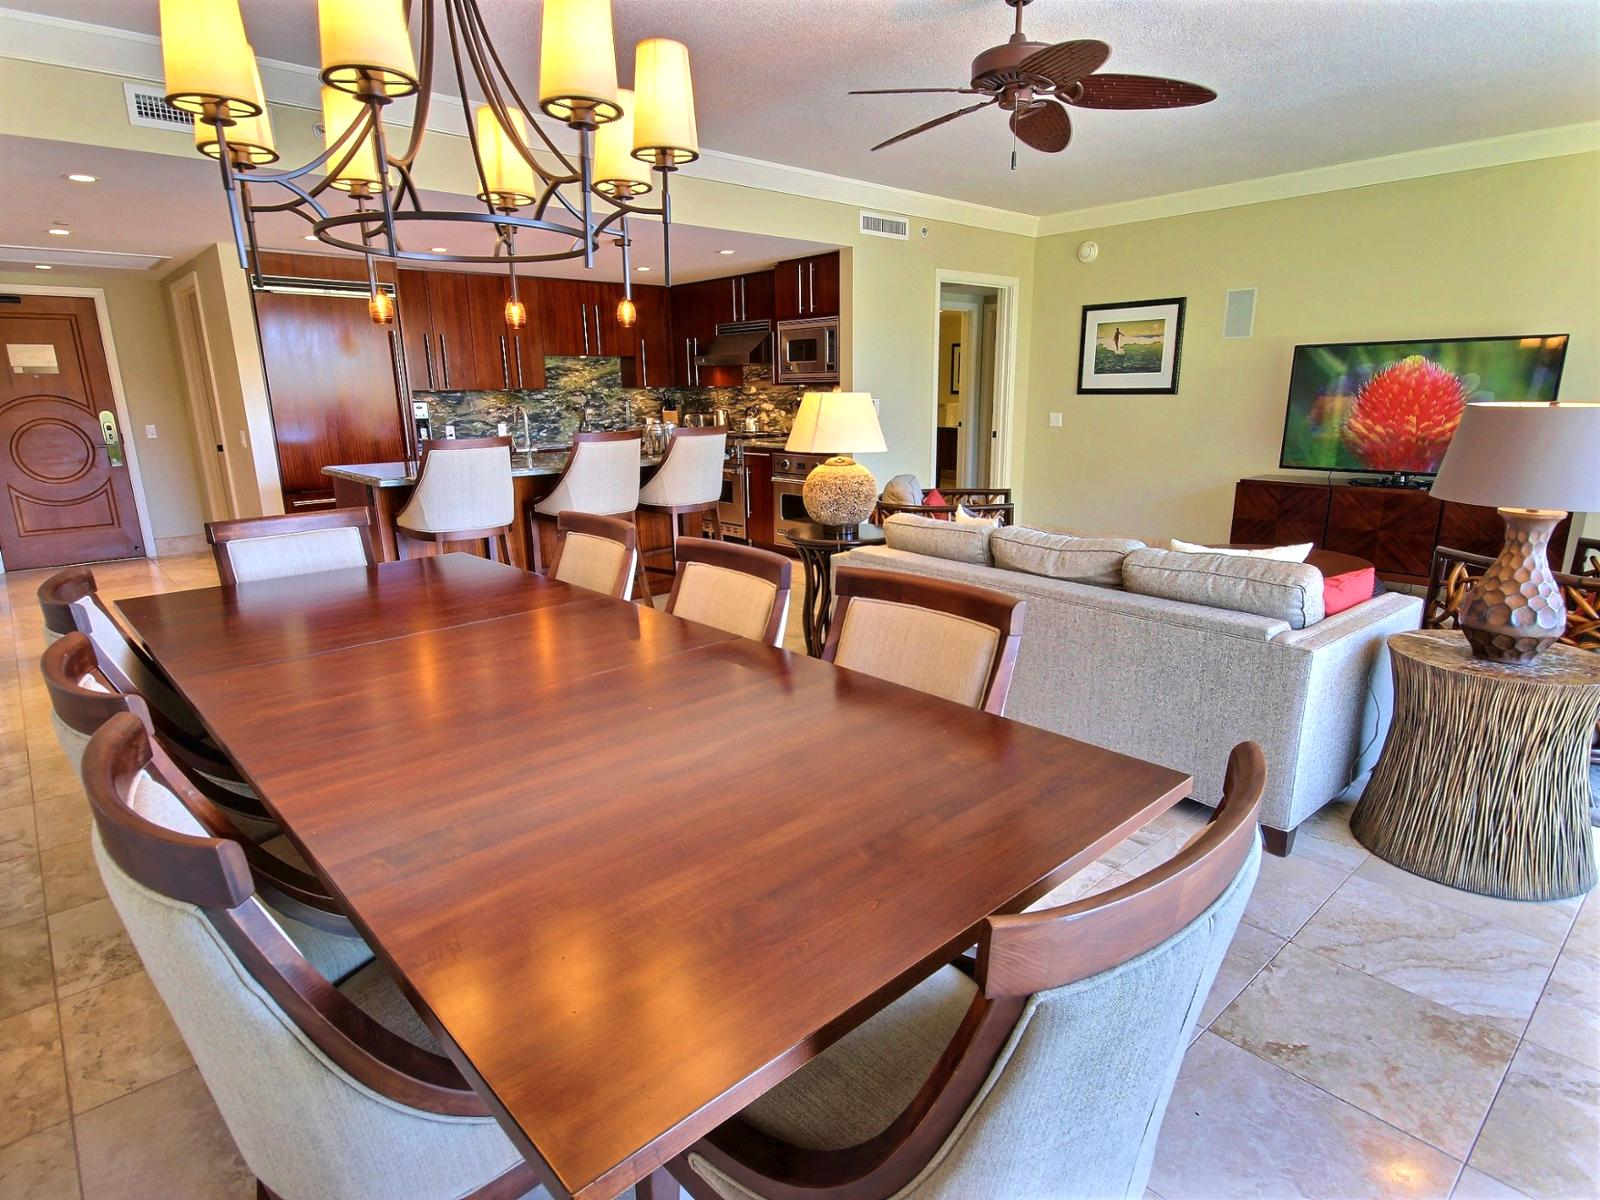 Large dining seating for eight guests